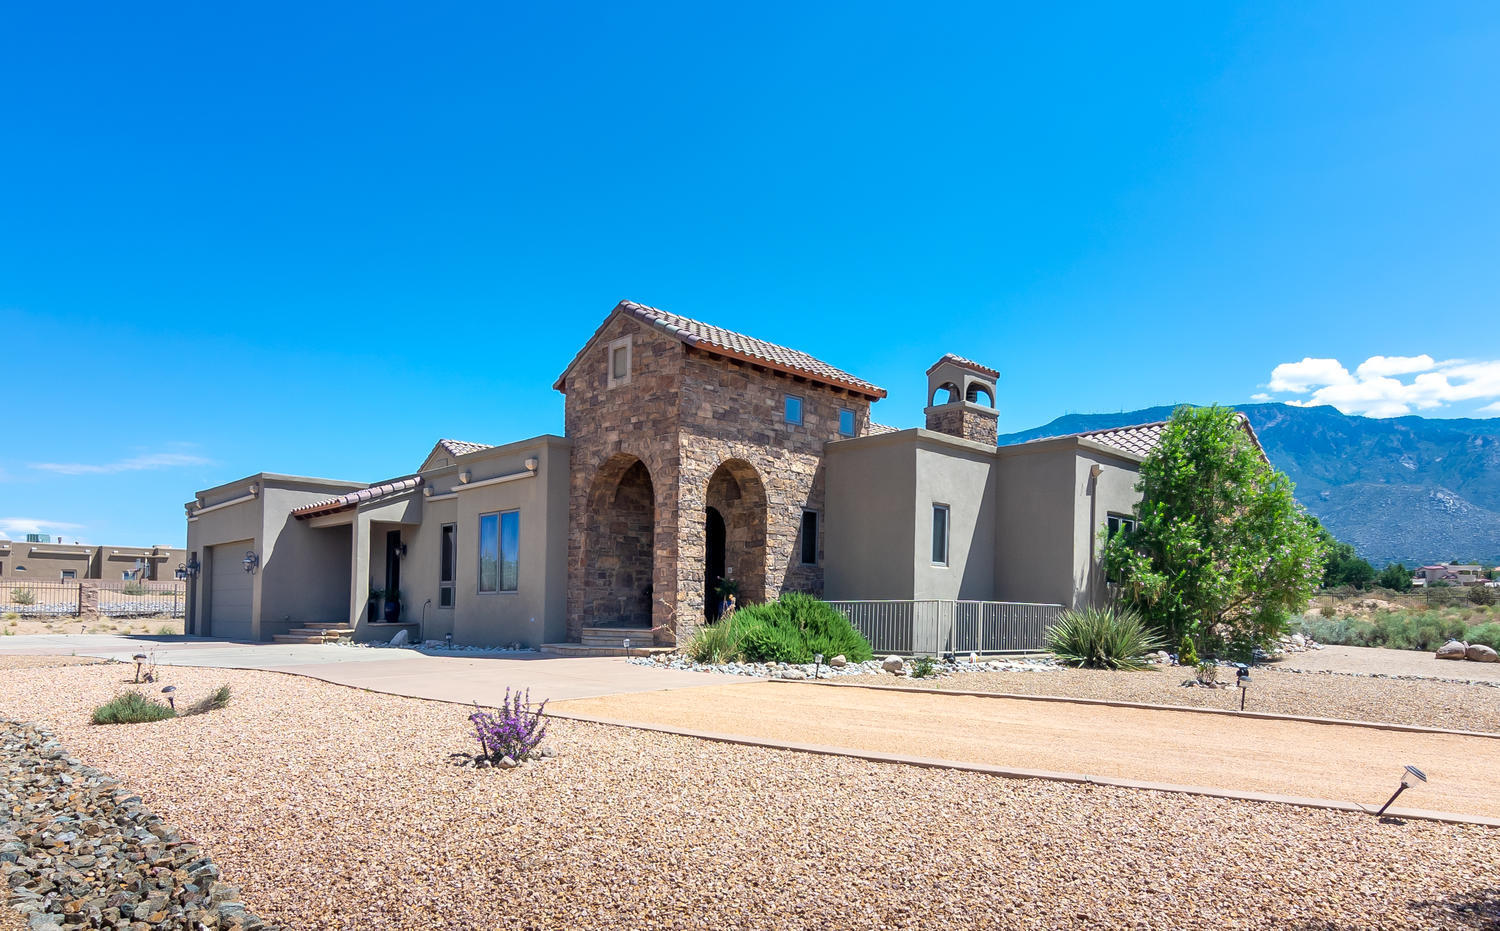 AMAZING custom home beautifully located in North Albuquerque Acres, situated on .89 acre lot with gated entry & commanding VIEWS of the Sandia mountains! Step inside & experience incredible architectural detail, with exceptional finishes: stone accents, arched doorways, crown molding, custom cabinetry & built-ins, top of the line lighting, wood windows & handsome wood floors. Gourmet kitchen with Wolf appliances, subzero, granite, & breakfast bar island! Exquisite formal dining room, & family room with gas log fireplace! Separated master retreat offers patio access & luxurious bathroom!  Expansive walk-out basement includes: a bedroom, study, hobby room, full bathroom & access to patio & backyard! Spacious backyard with covered and open patios, fireplace, turf & splendid Mountain VIEWS!